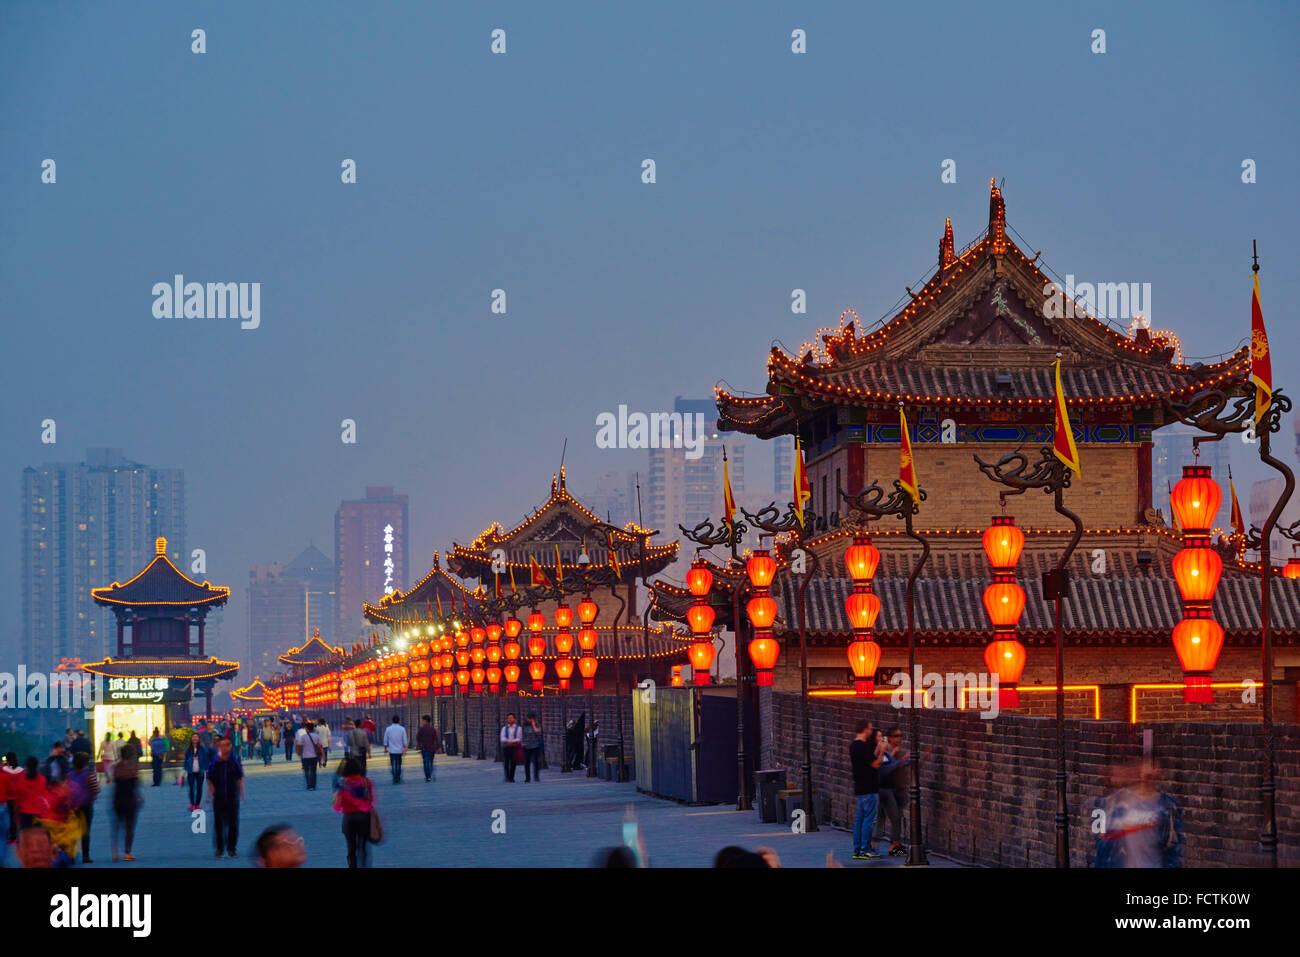 China, Shaanxi province, Xian, City wall and watch tower - Stock Image